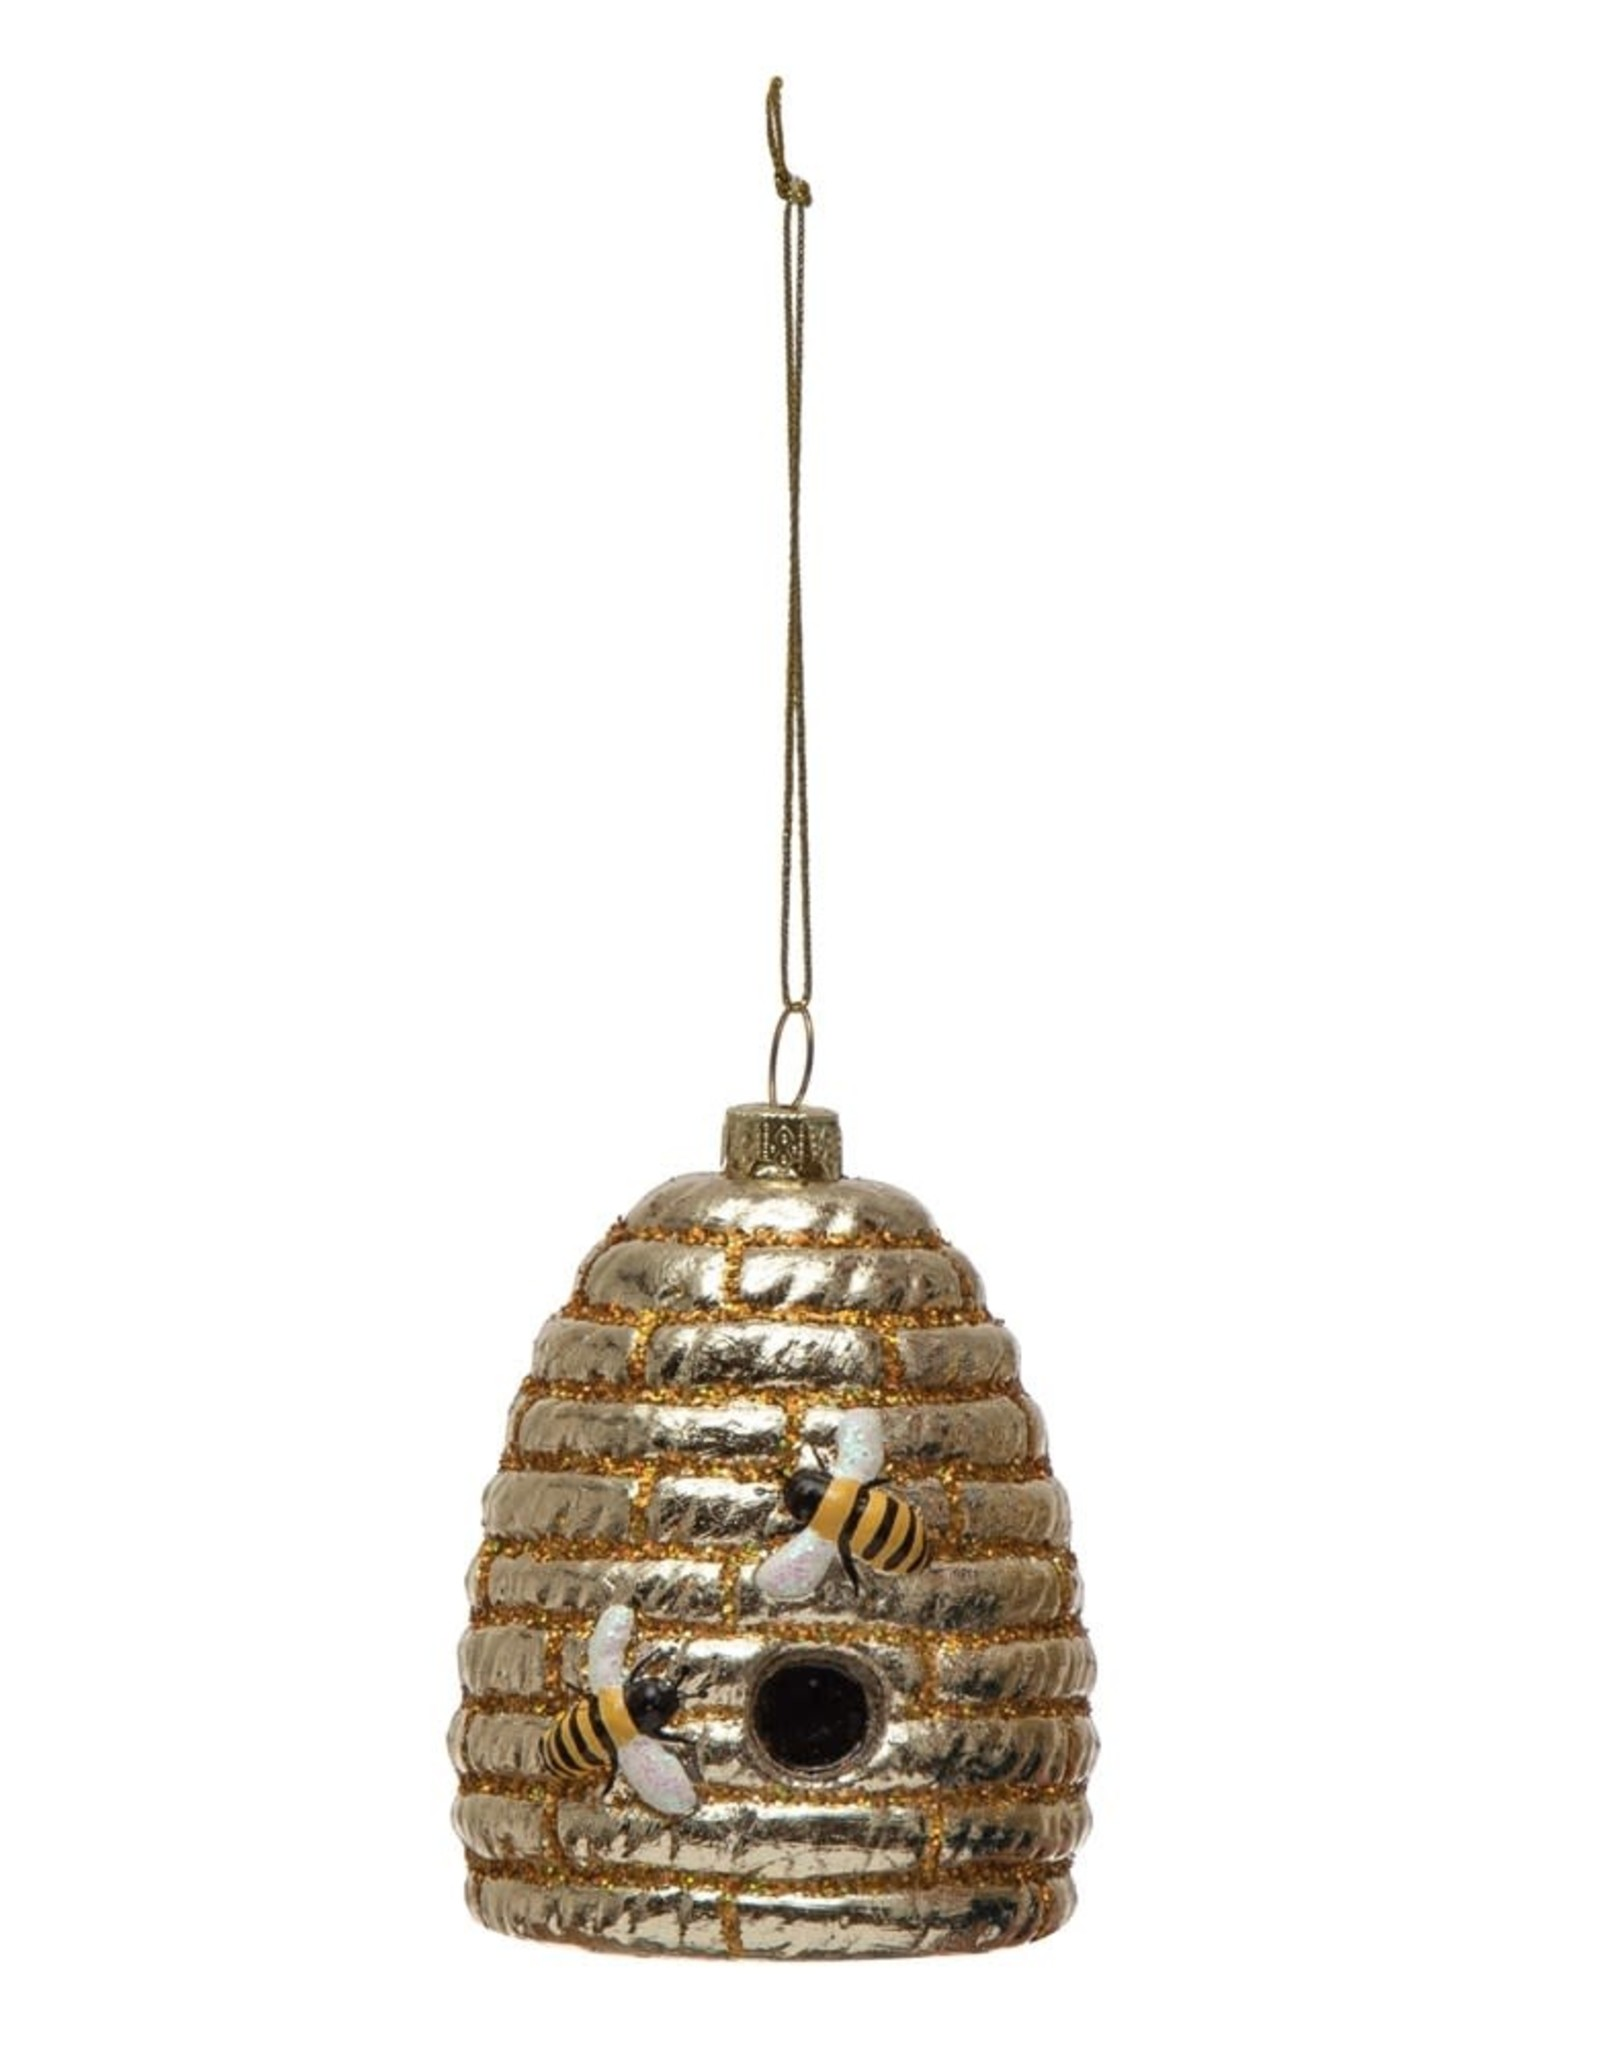 Wink 3 1/2 Hand Painted Glass Bee Hive Ornament